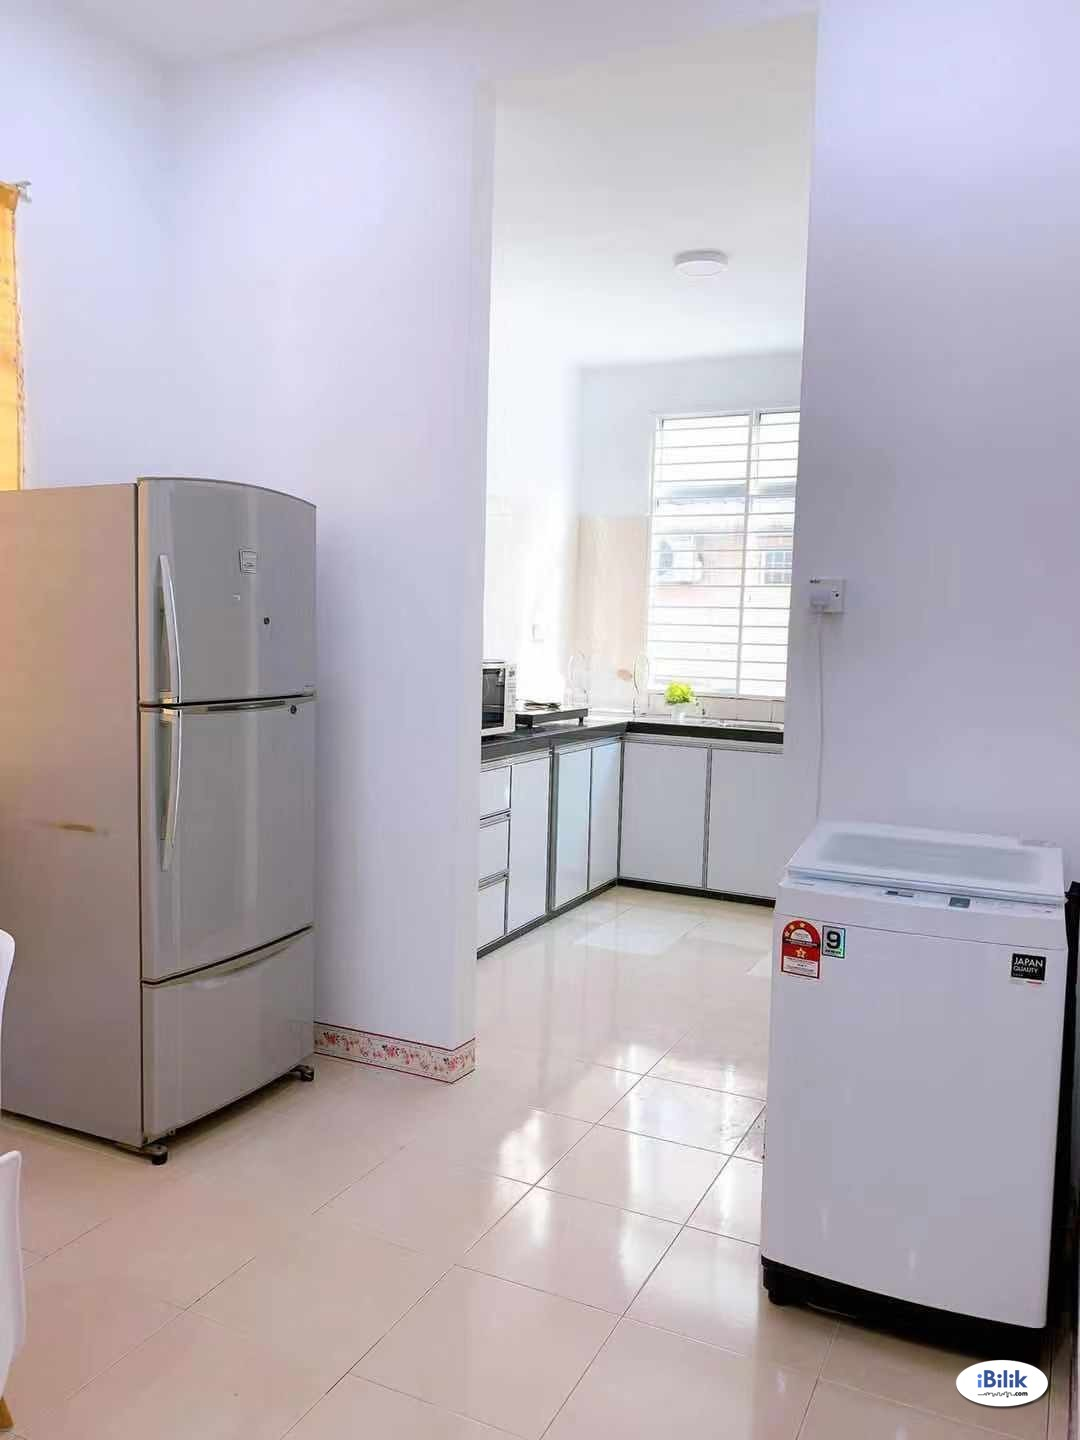 Single Room, air-con, female only